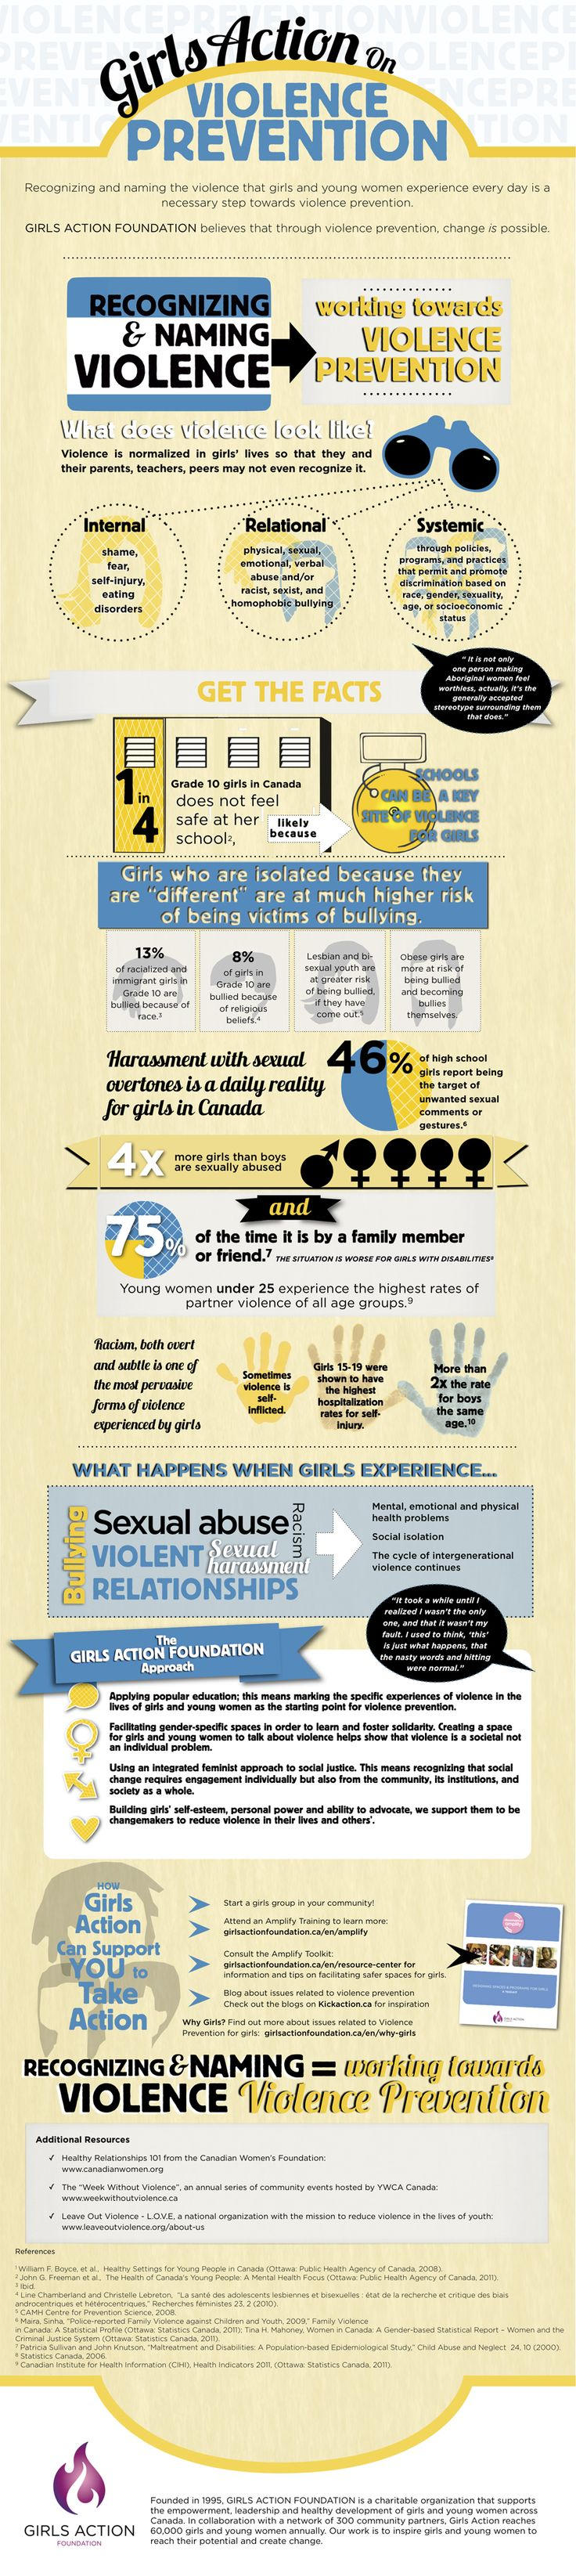 Girls Action on Violence Prevention | Girls Action Foundation    oRecognizing Violence is one part of working towards violence prevention, naming violence is the other – find out more about Violence Prevention.  #infographics